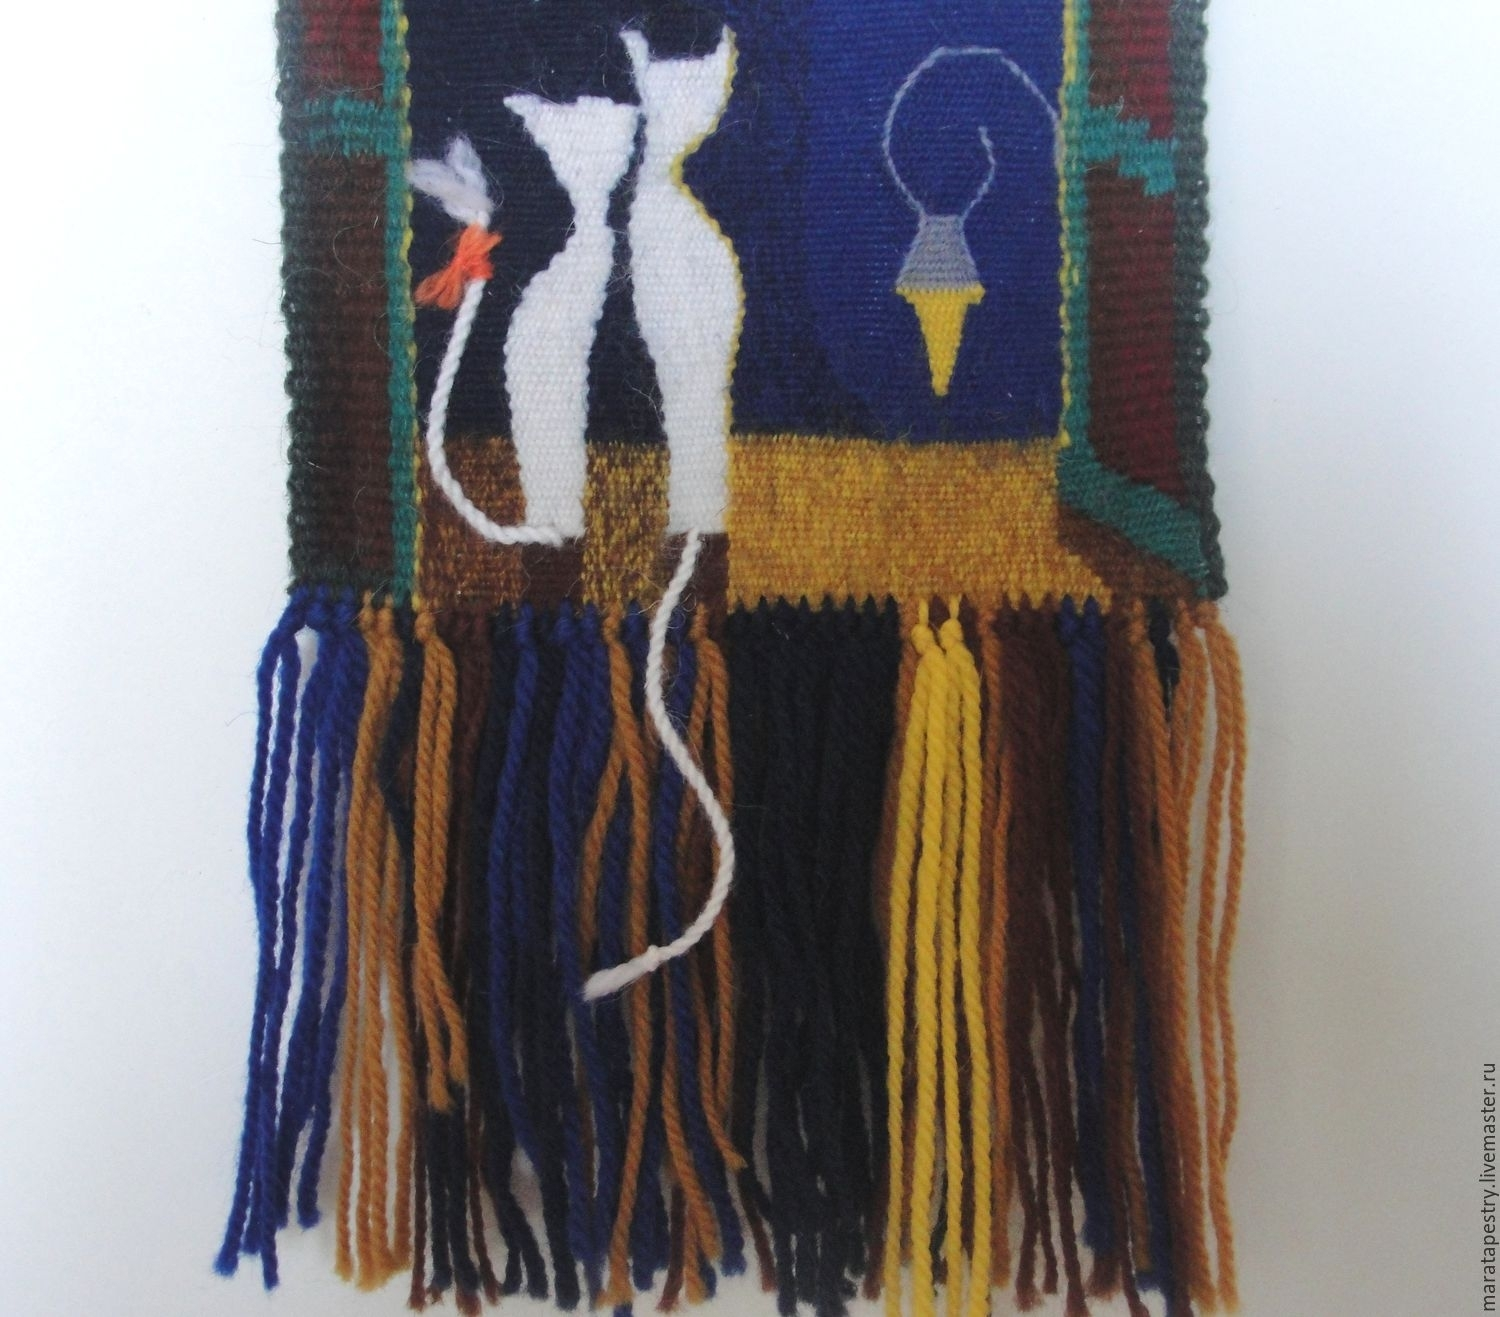 Cats Woven Wall Hanging Woven Tapestry Wall Art Fiber Textile Intended For Recent Woven Textile Wall Art (View 8 of 15)